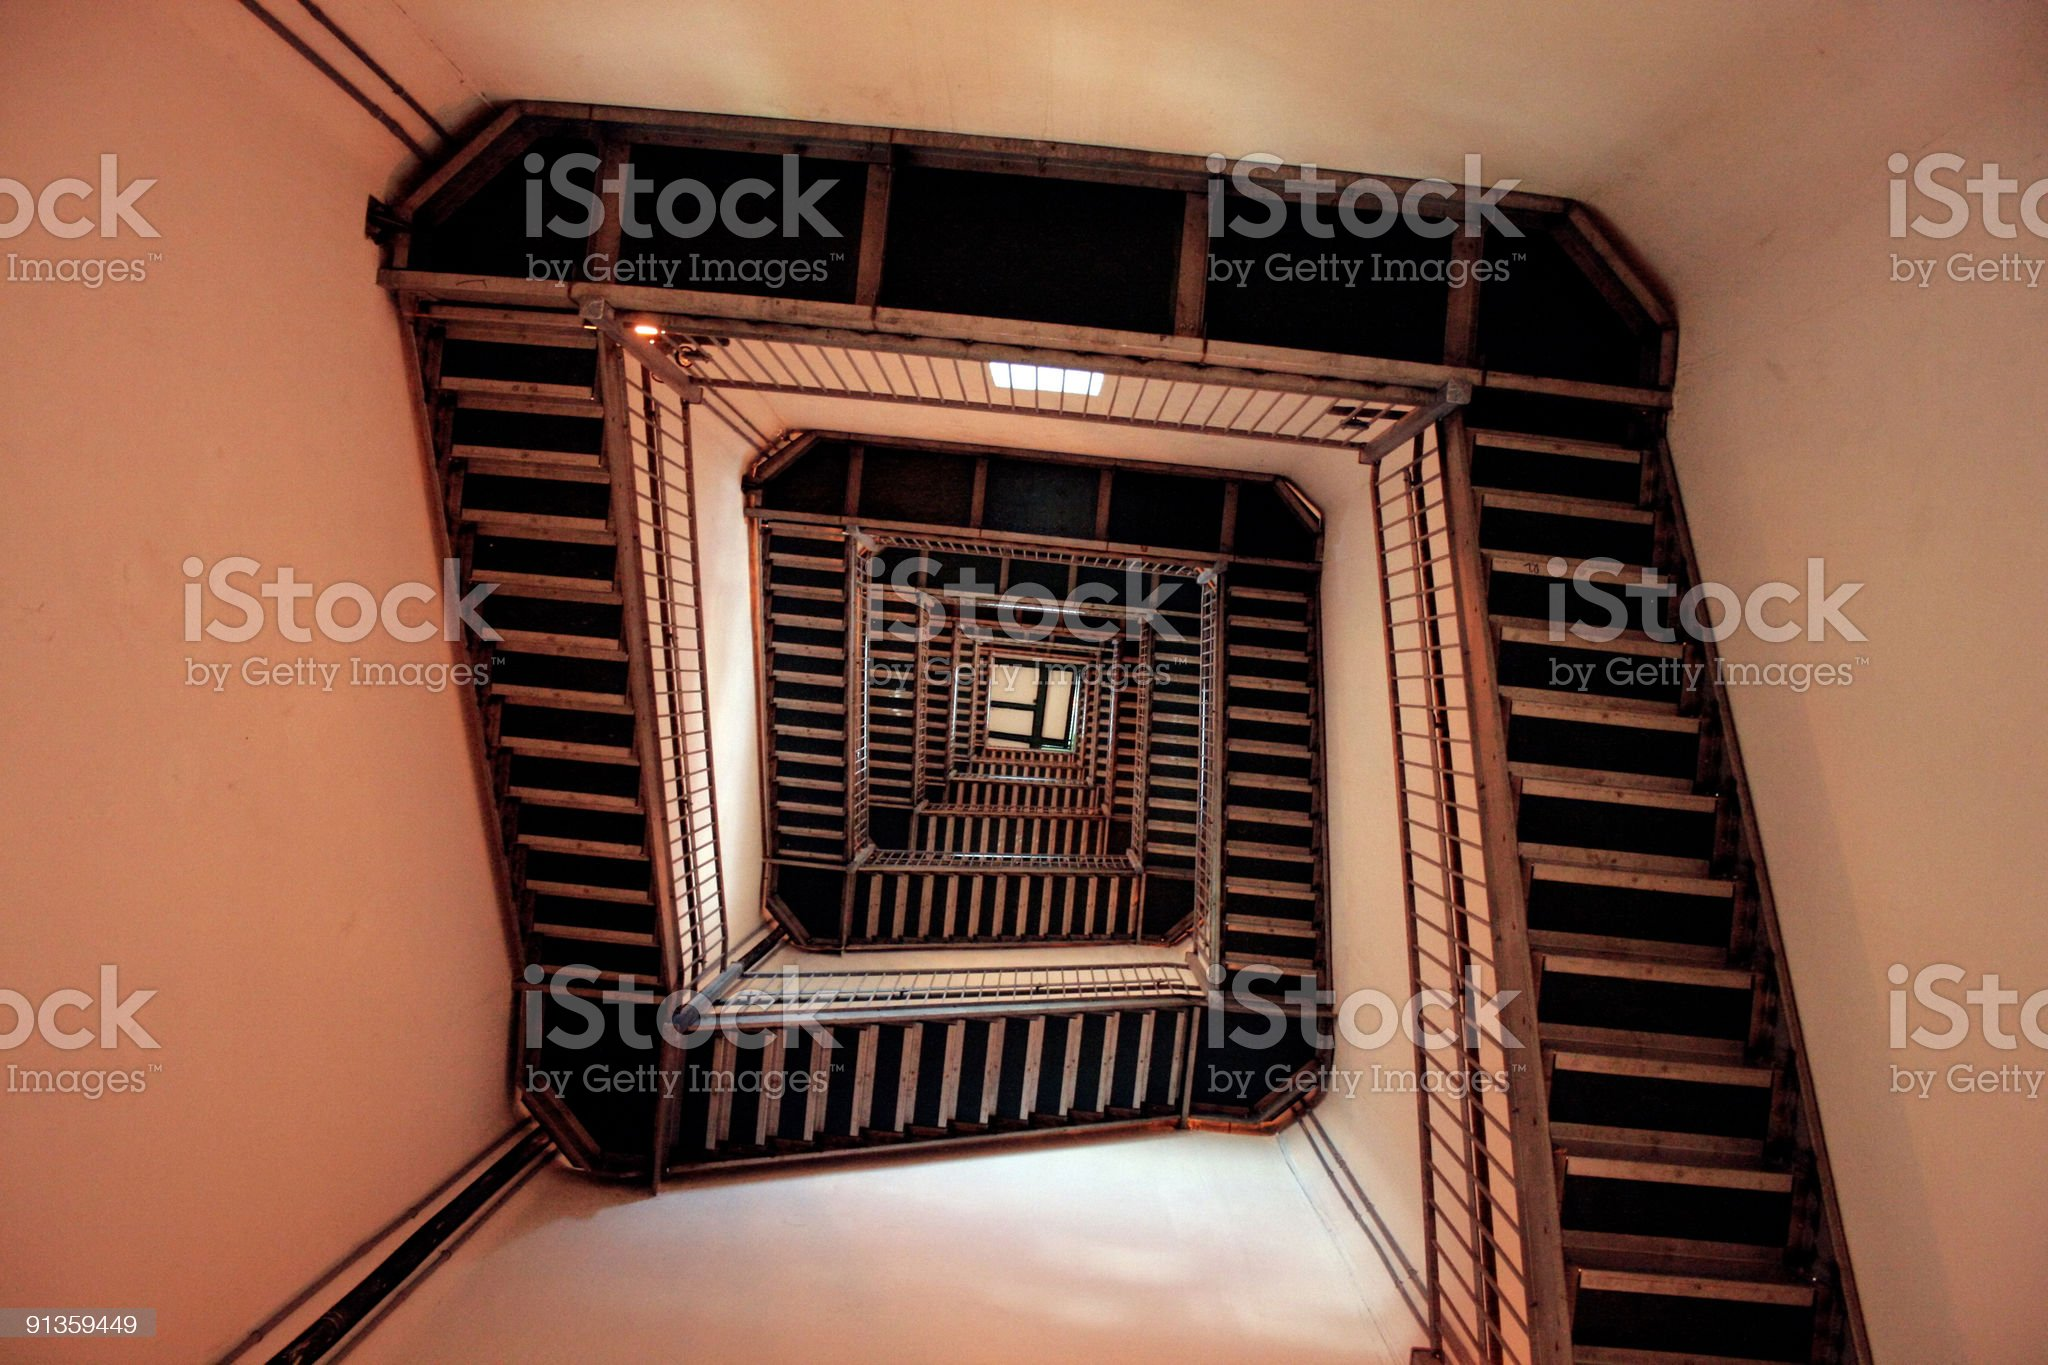 Infinite Winding Staircase - Low Angle View royalty-free stock photo